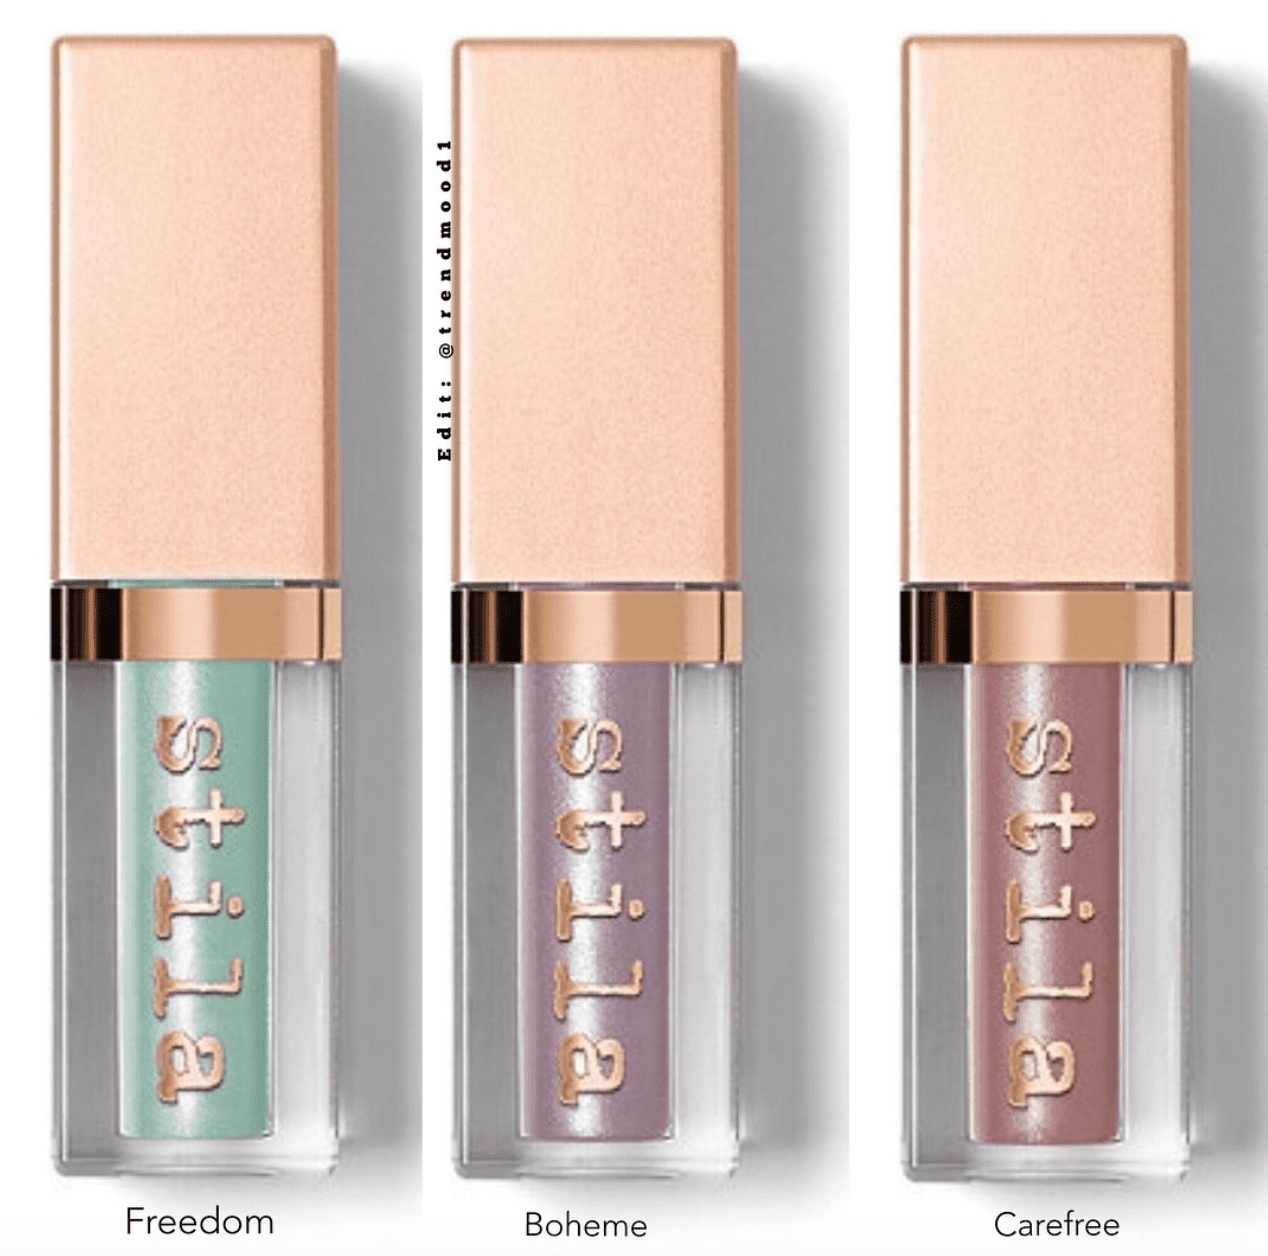 Stila-Shimmr-and-glow-new-spring-eyeshadow-liquid-shades-Freedom-Boheme-Carefree